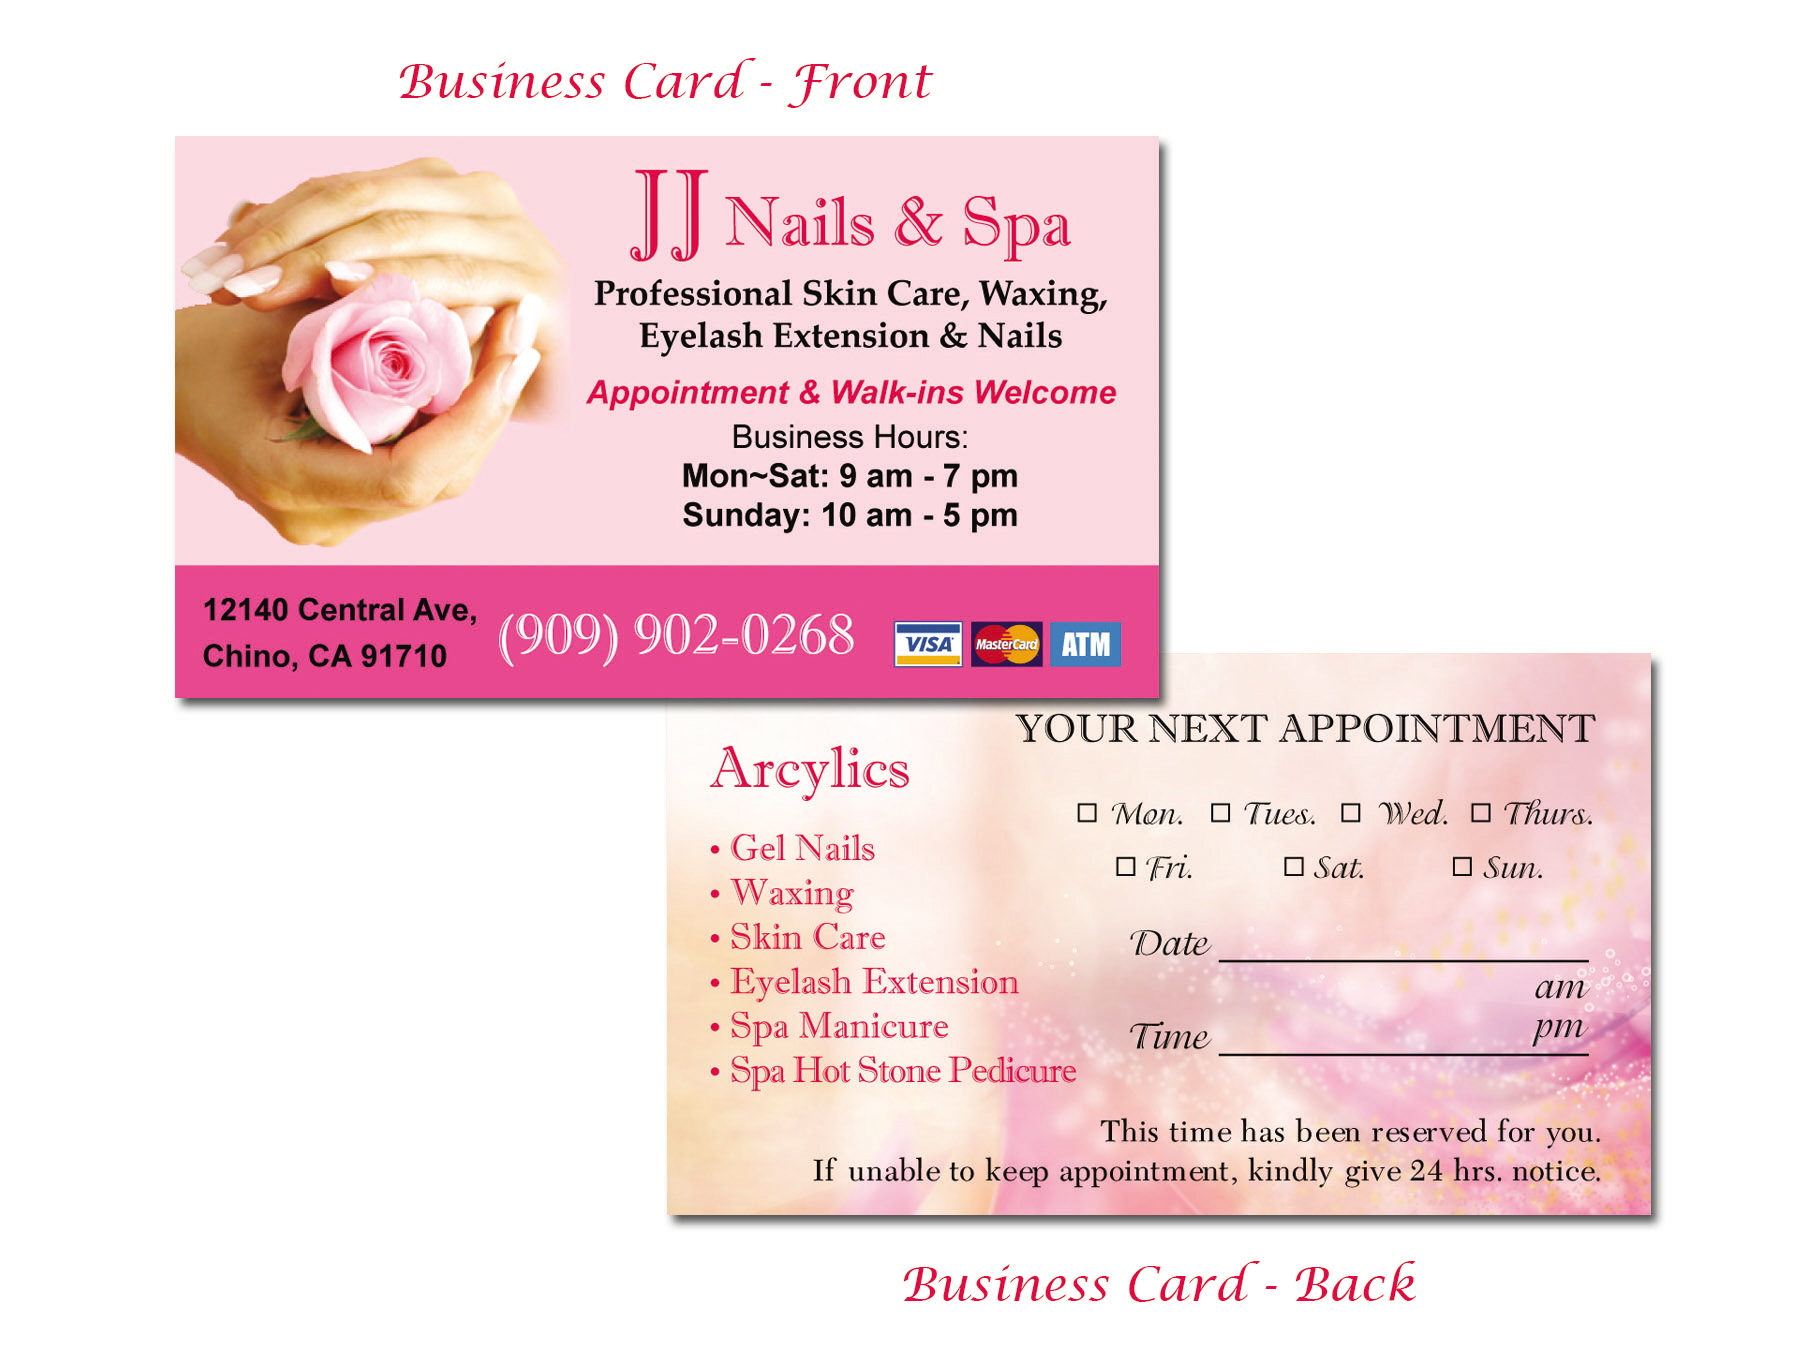 Esthetician business cards templates business card sample nail salon business card colourmoves